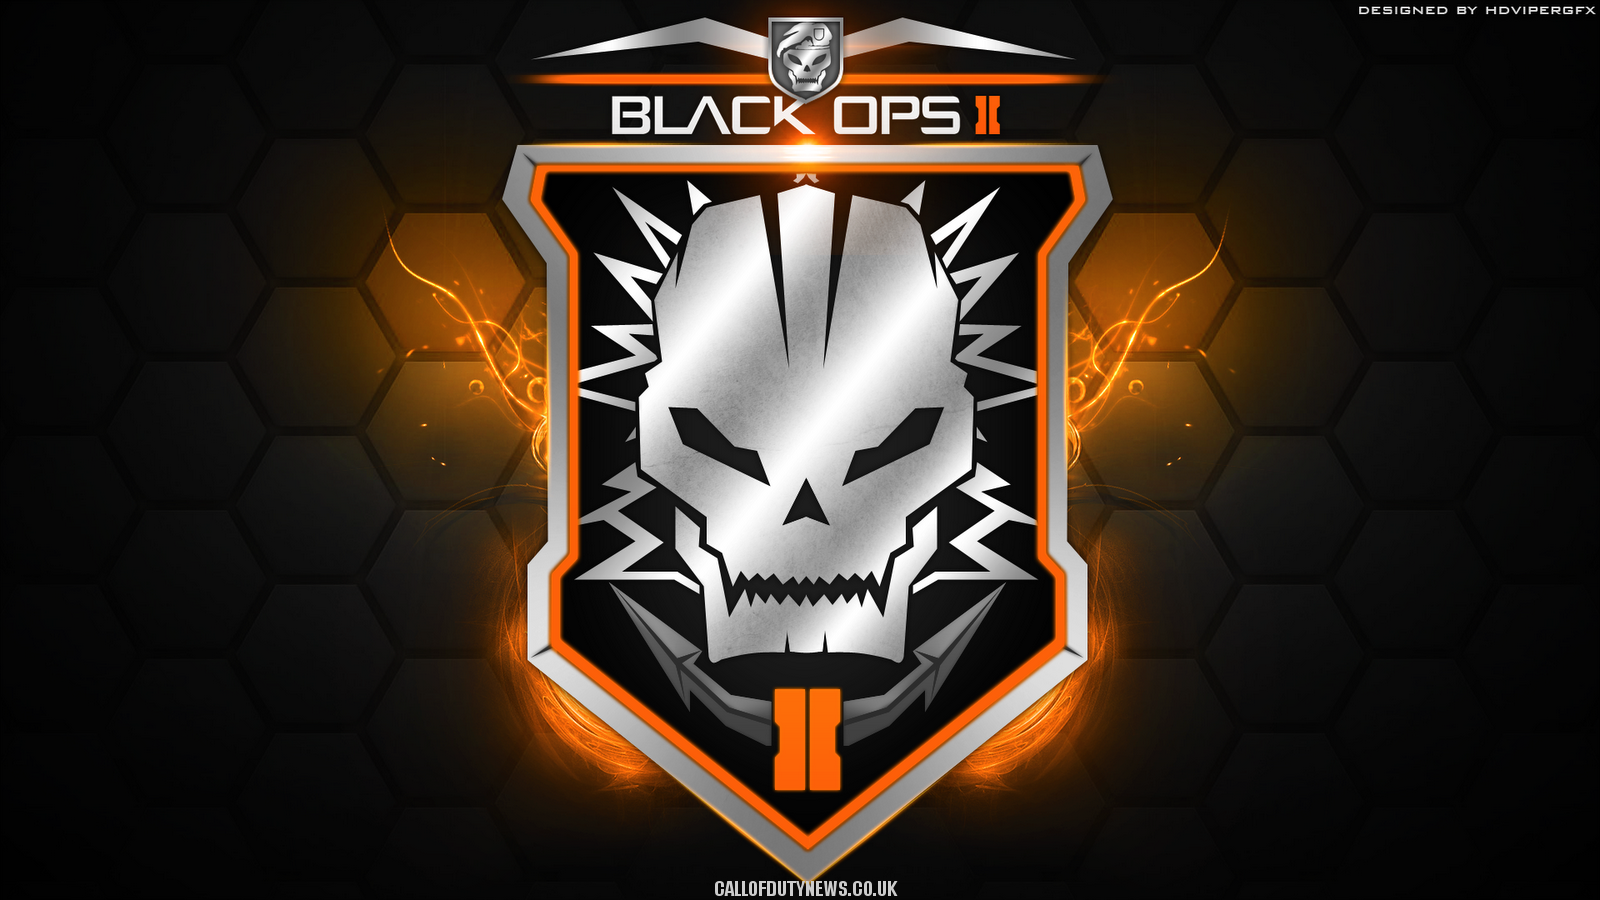 Http Callofdutynews Co Uk Wp Content Uploads 2012 07 Black Ops 2 Wallpaper 77 Png Call Of Duty Black Black Ops Call Of Duty